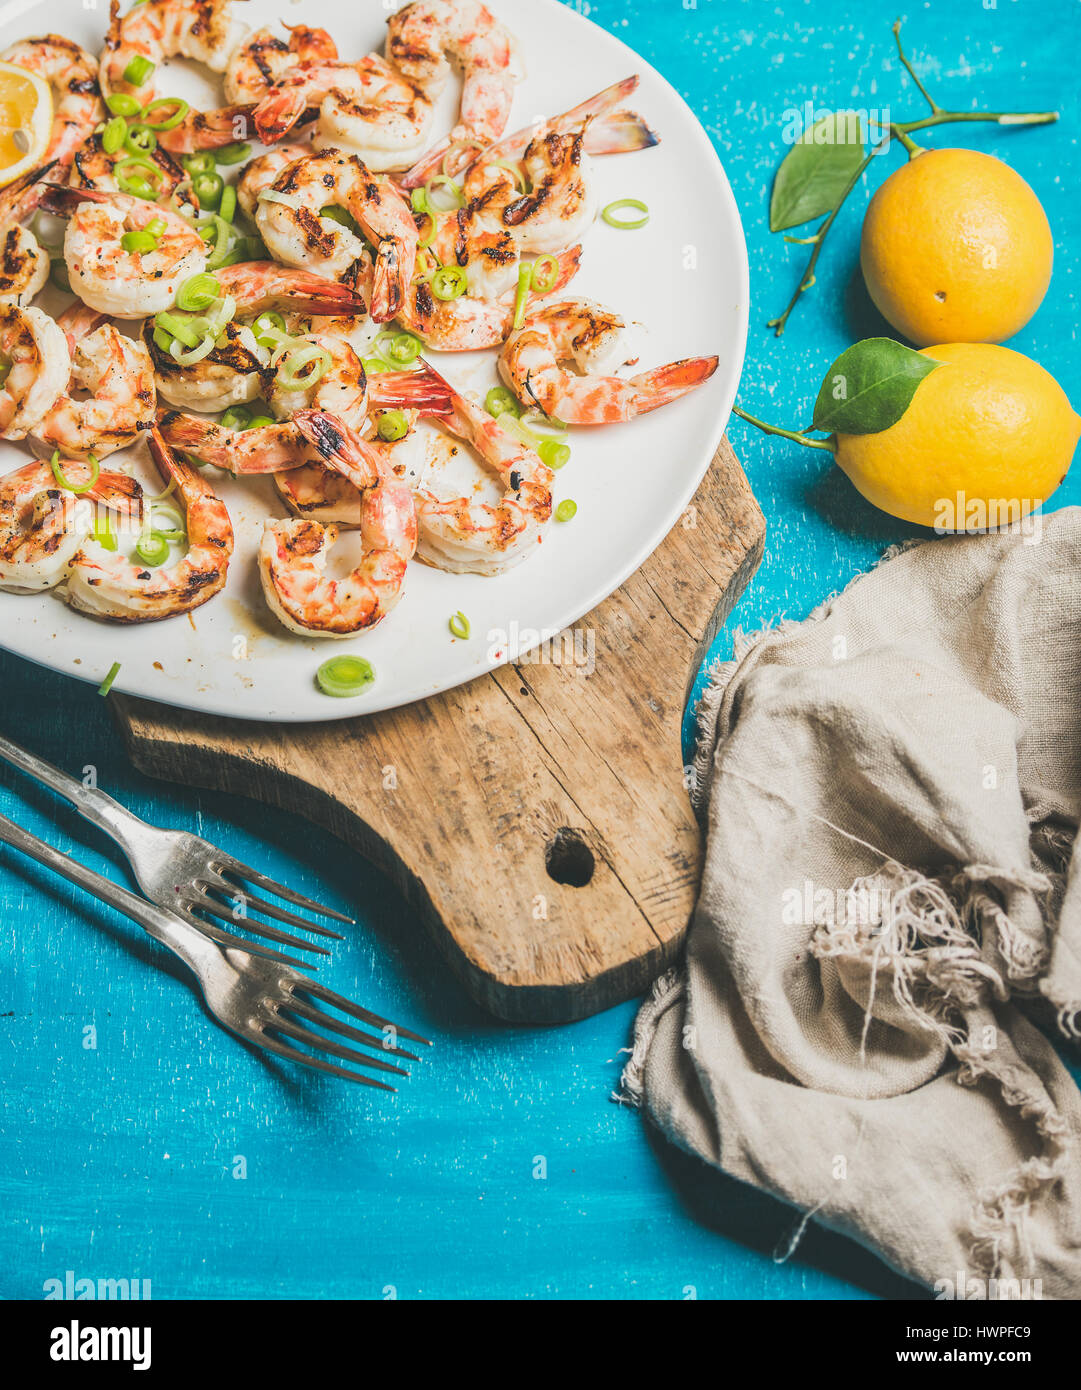 Grilled tiger prawns with lemon, leek and saucein white plate - Stock Image